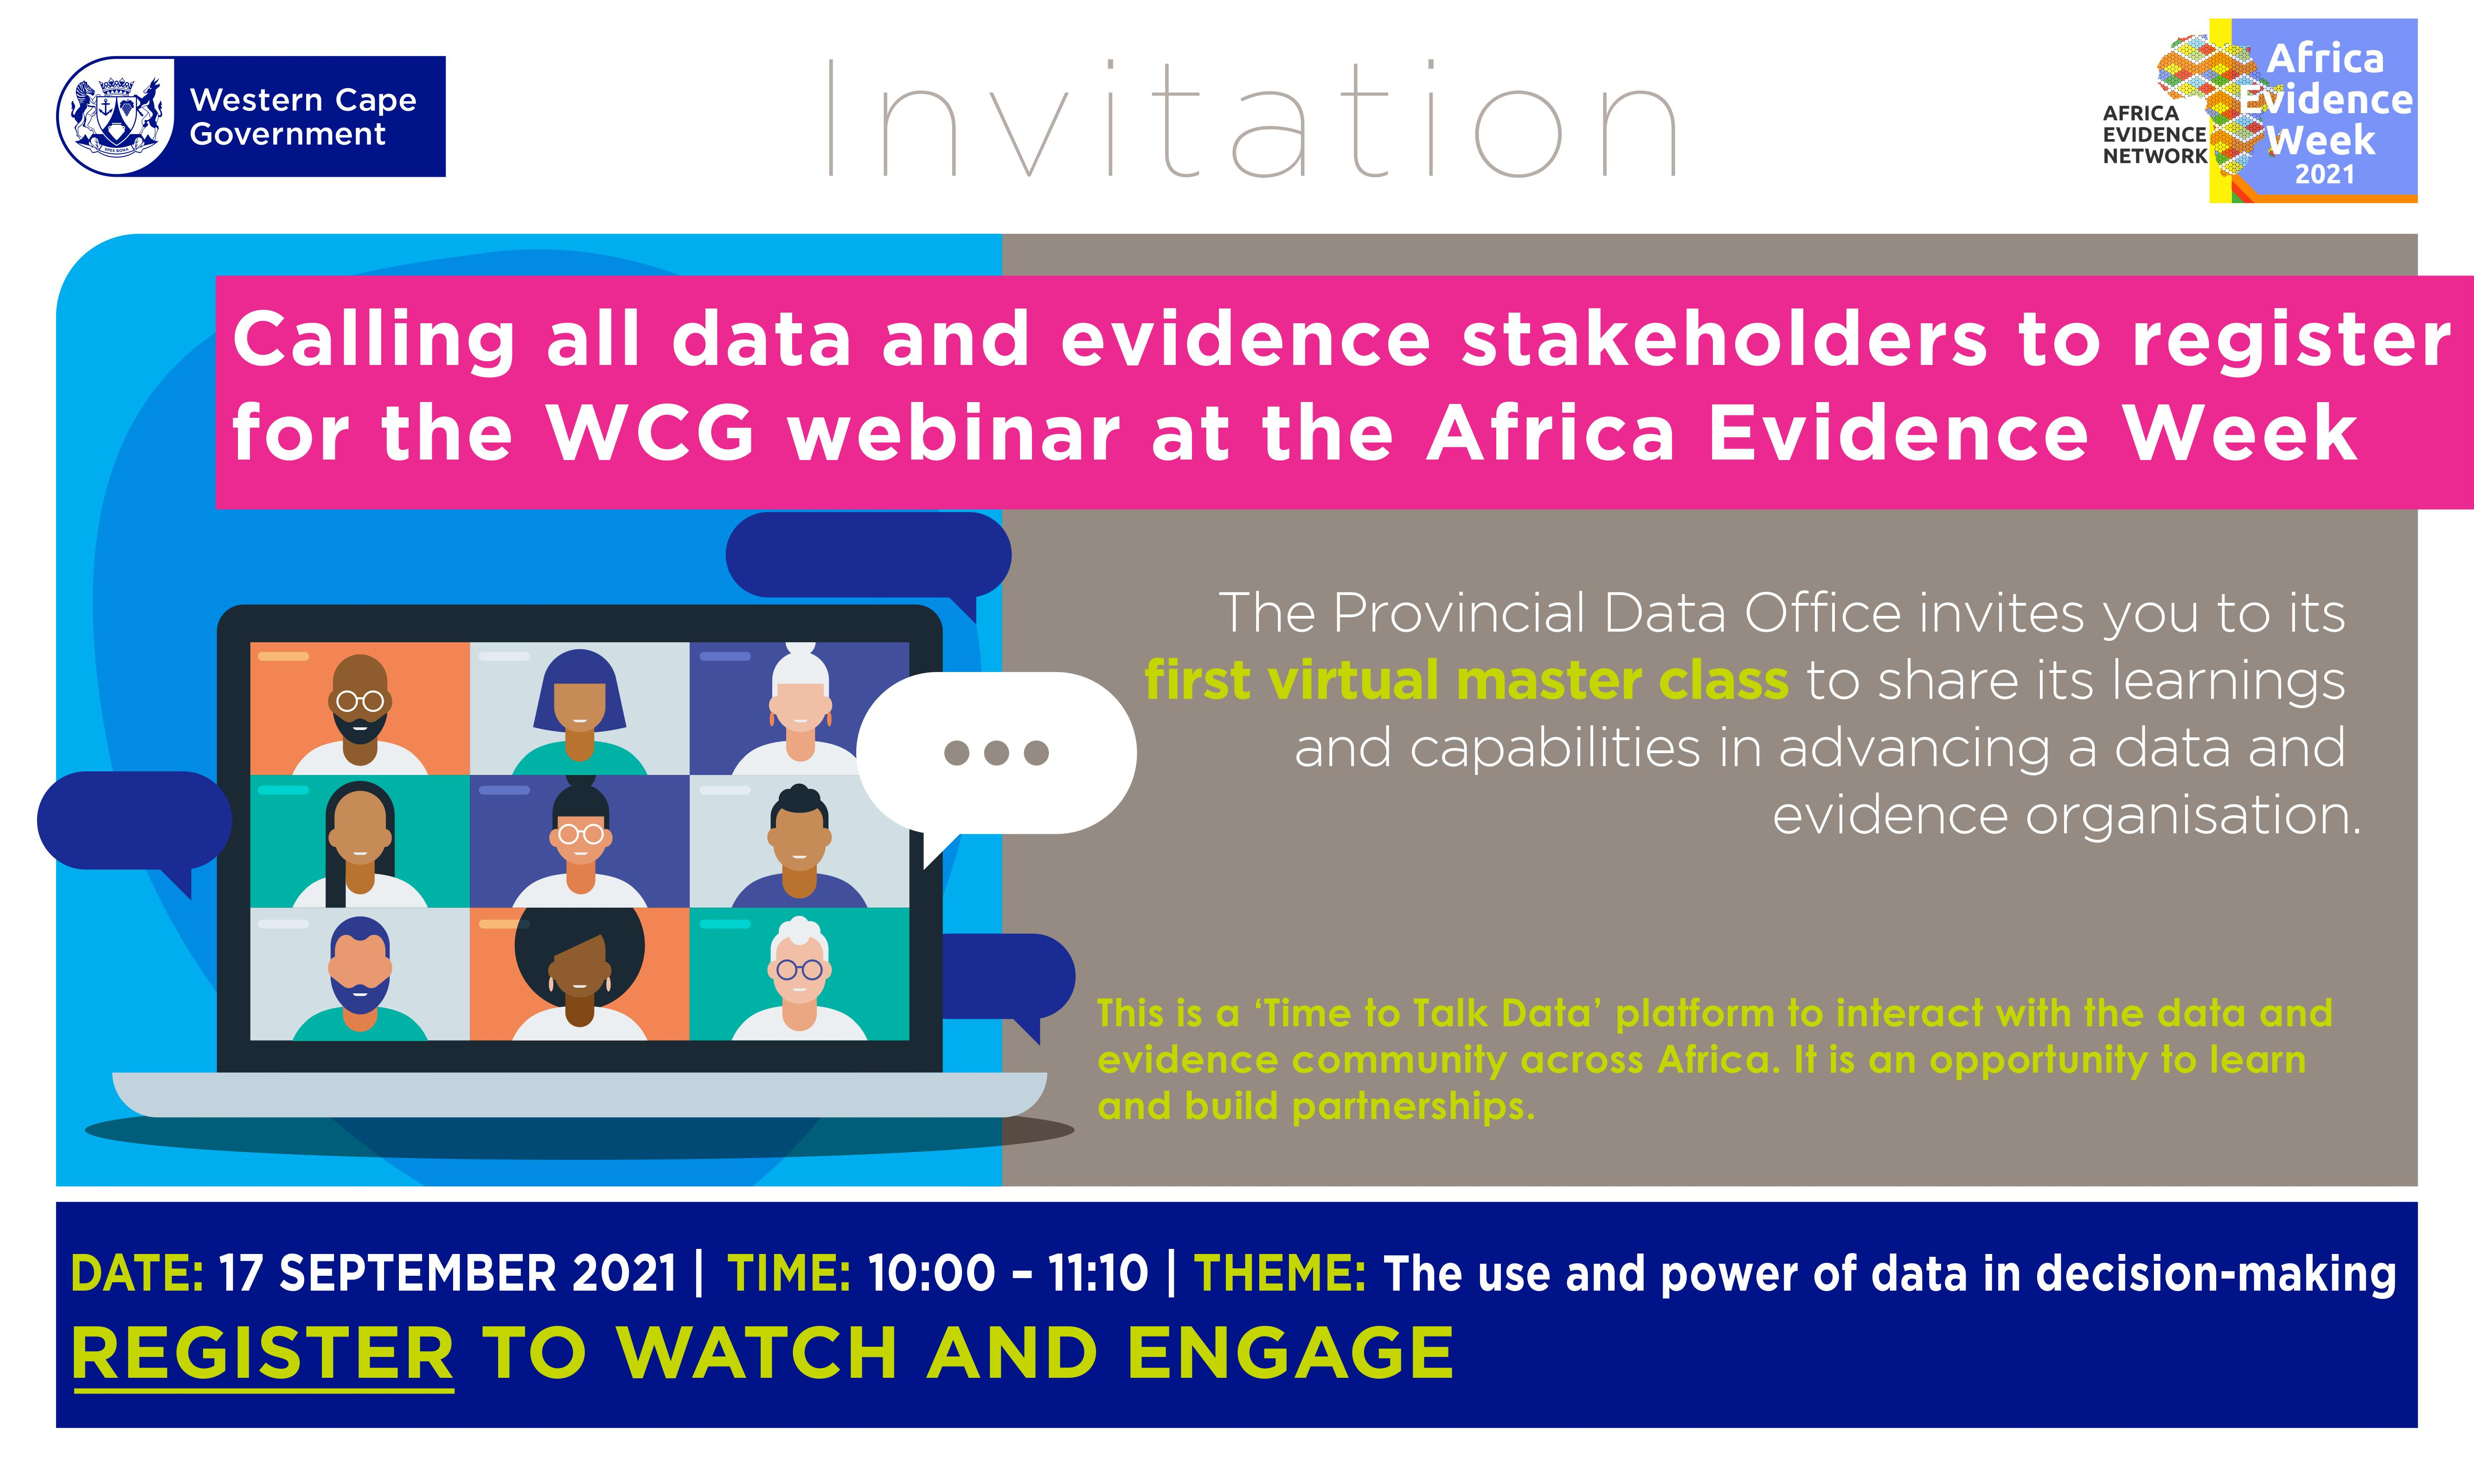 Africa Evidence Week 2021 event: Time to Talk Data – use and power of data in decision-making